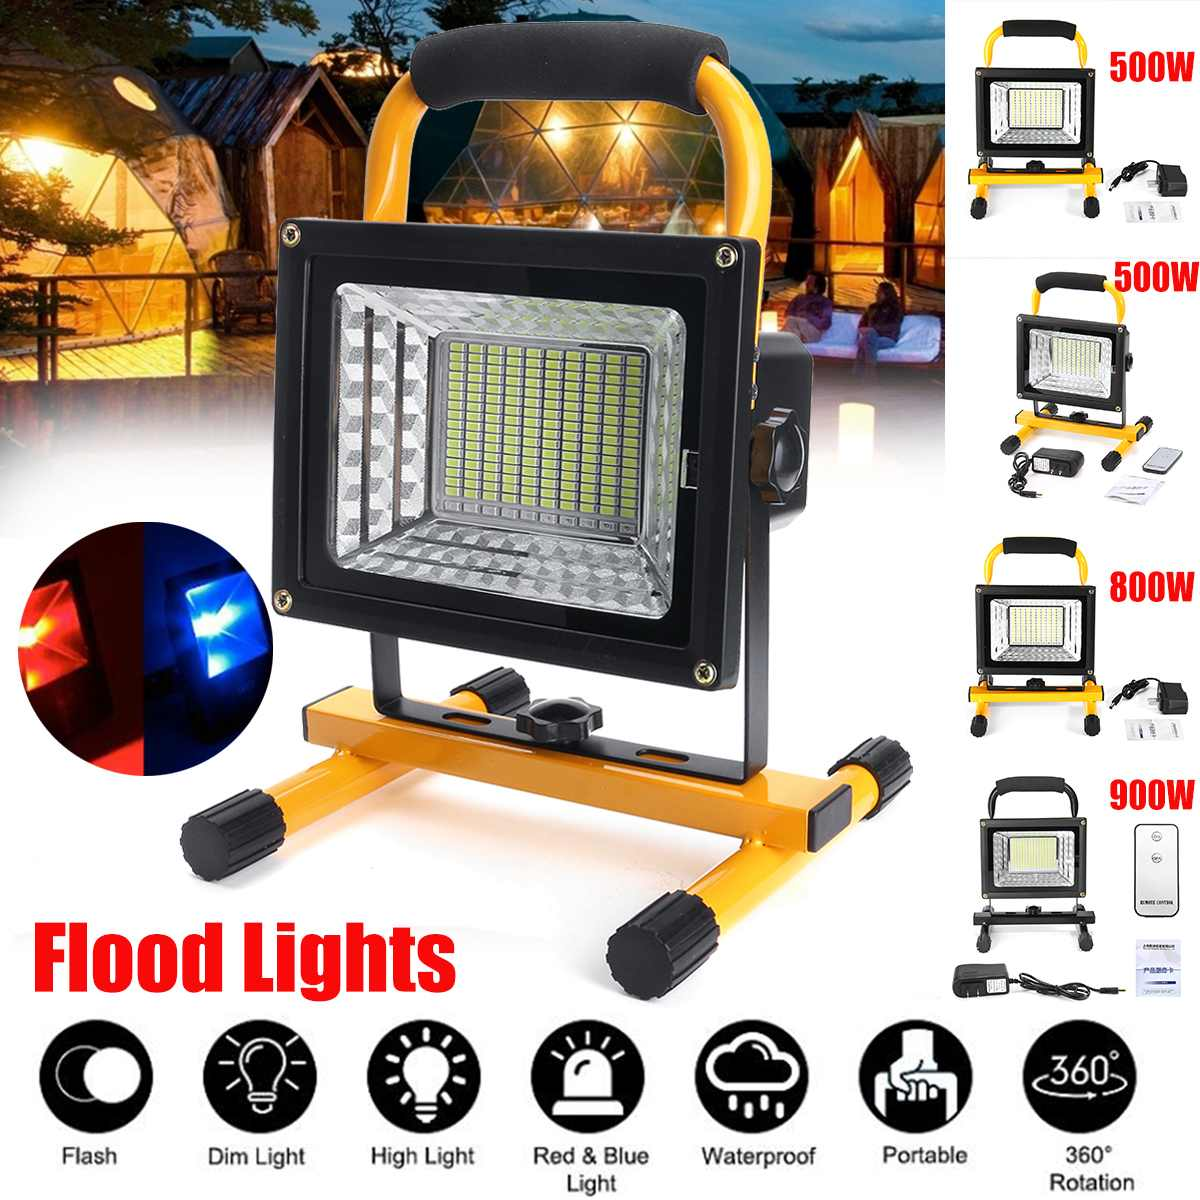 500 800 900W LED Portable Rechargeable Floodlight Waterproof Spotlight Battery Powered Searchlight Outdoor Work Lamp Camping